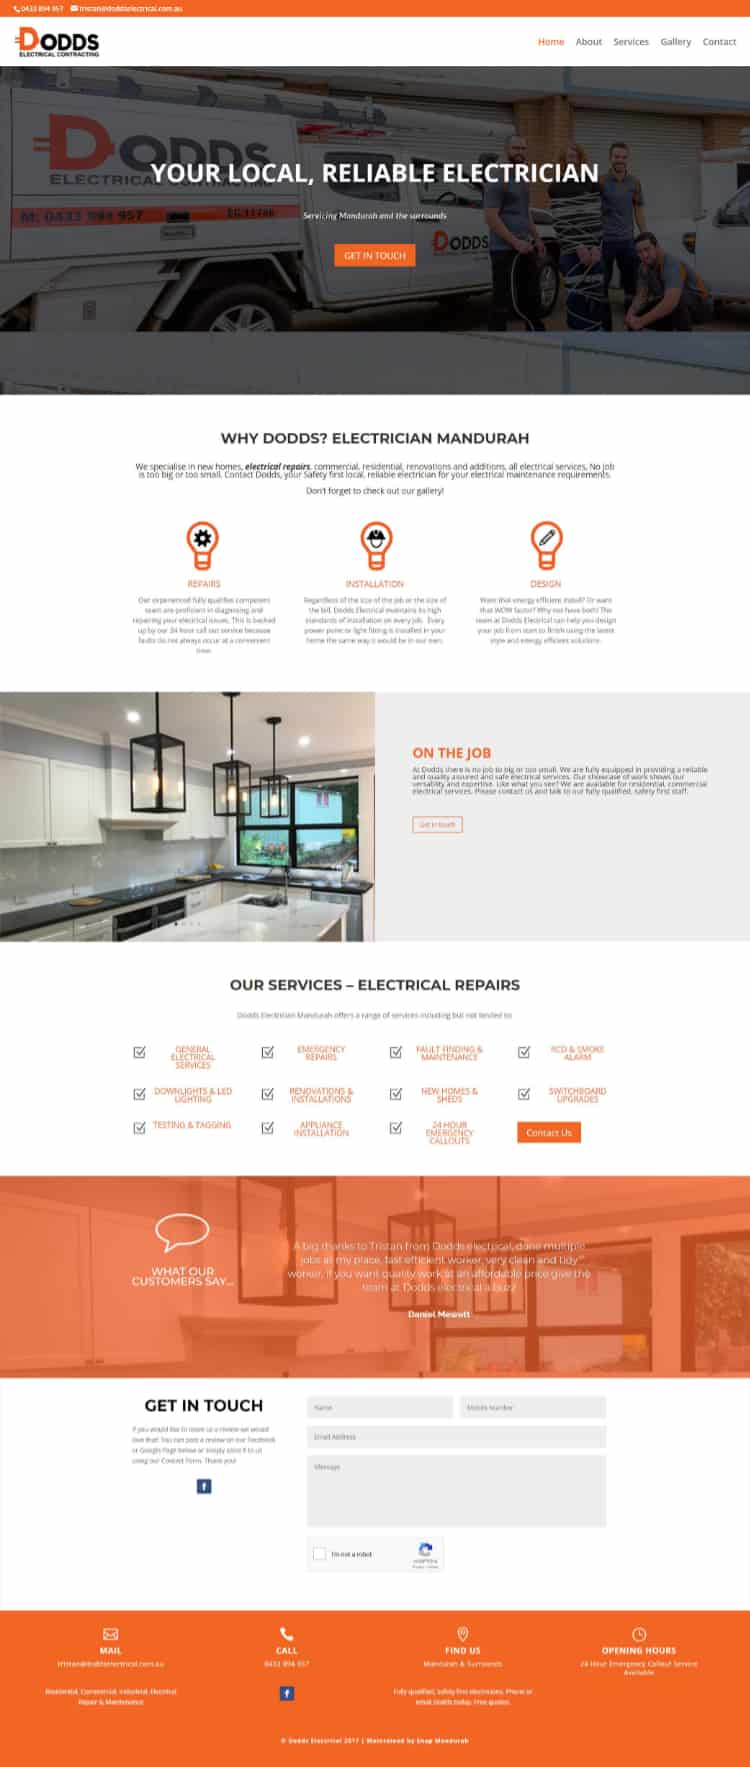 Dodds Electrical